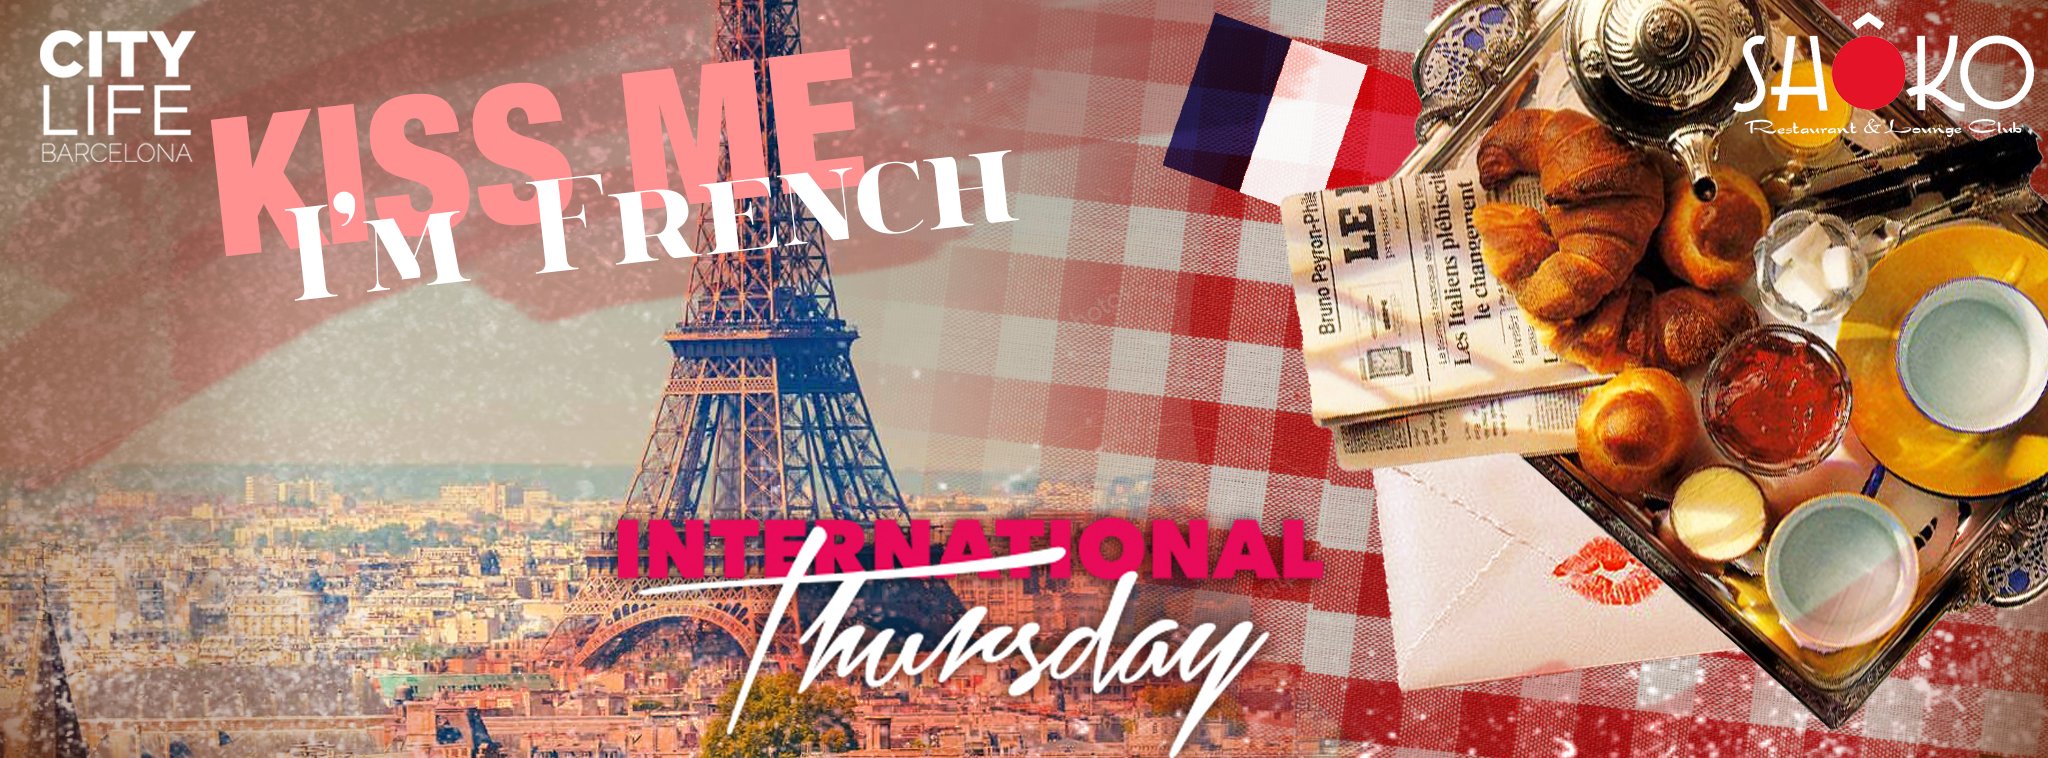 Kiss me I'm French - Free Dinner & 3 Free Drinks! @Shoko Lounge Club!